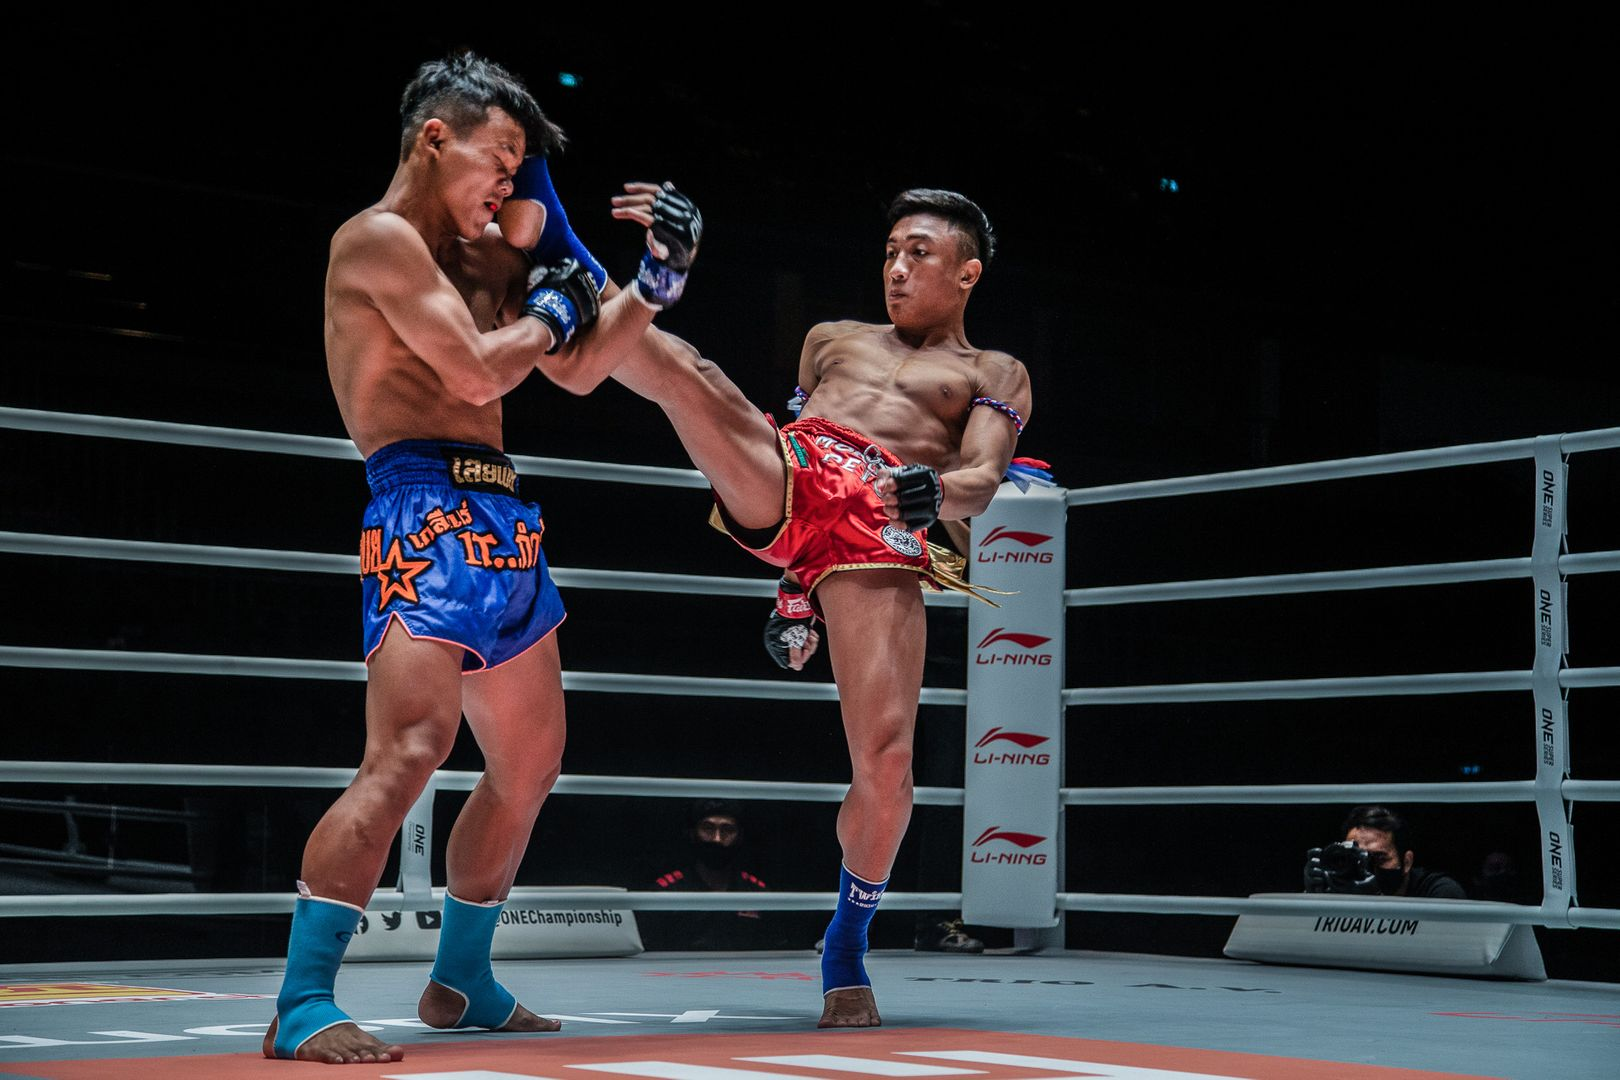 Muay Thai fighter Mongkolpetch Petchyindee Academy kicks Sok Thy in the face